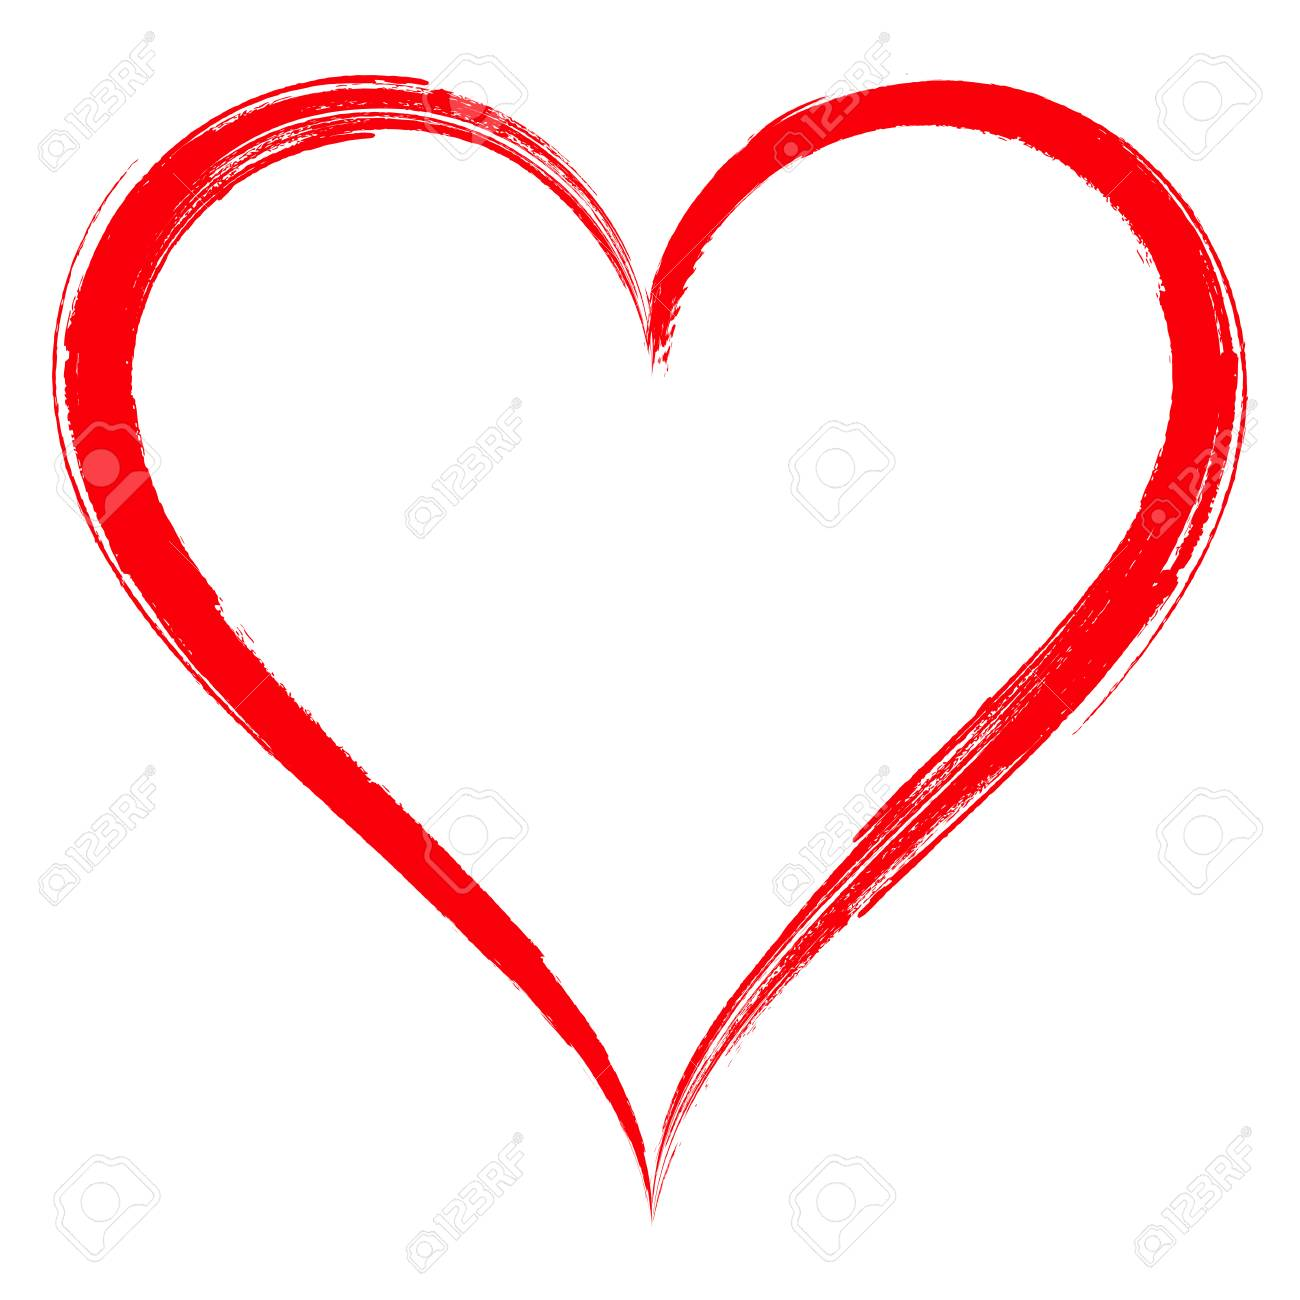 heart shape frame with brush painting isolated on white background rh 123rf com vector heart shaped lighter repair vector heart shape free